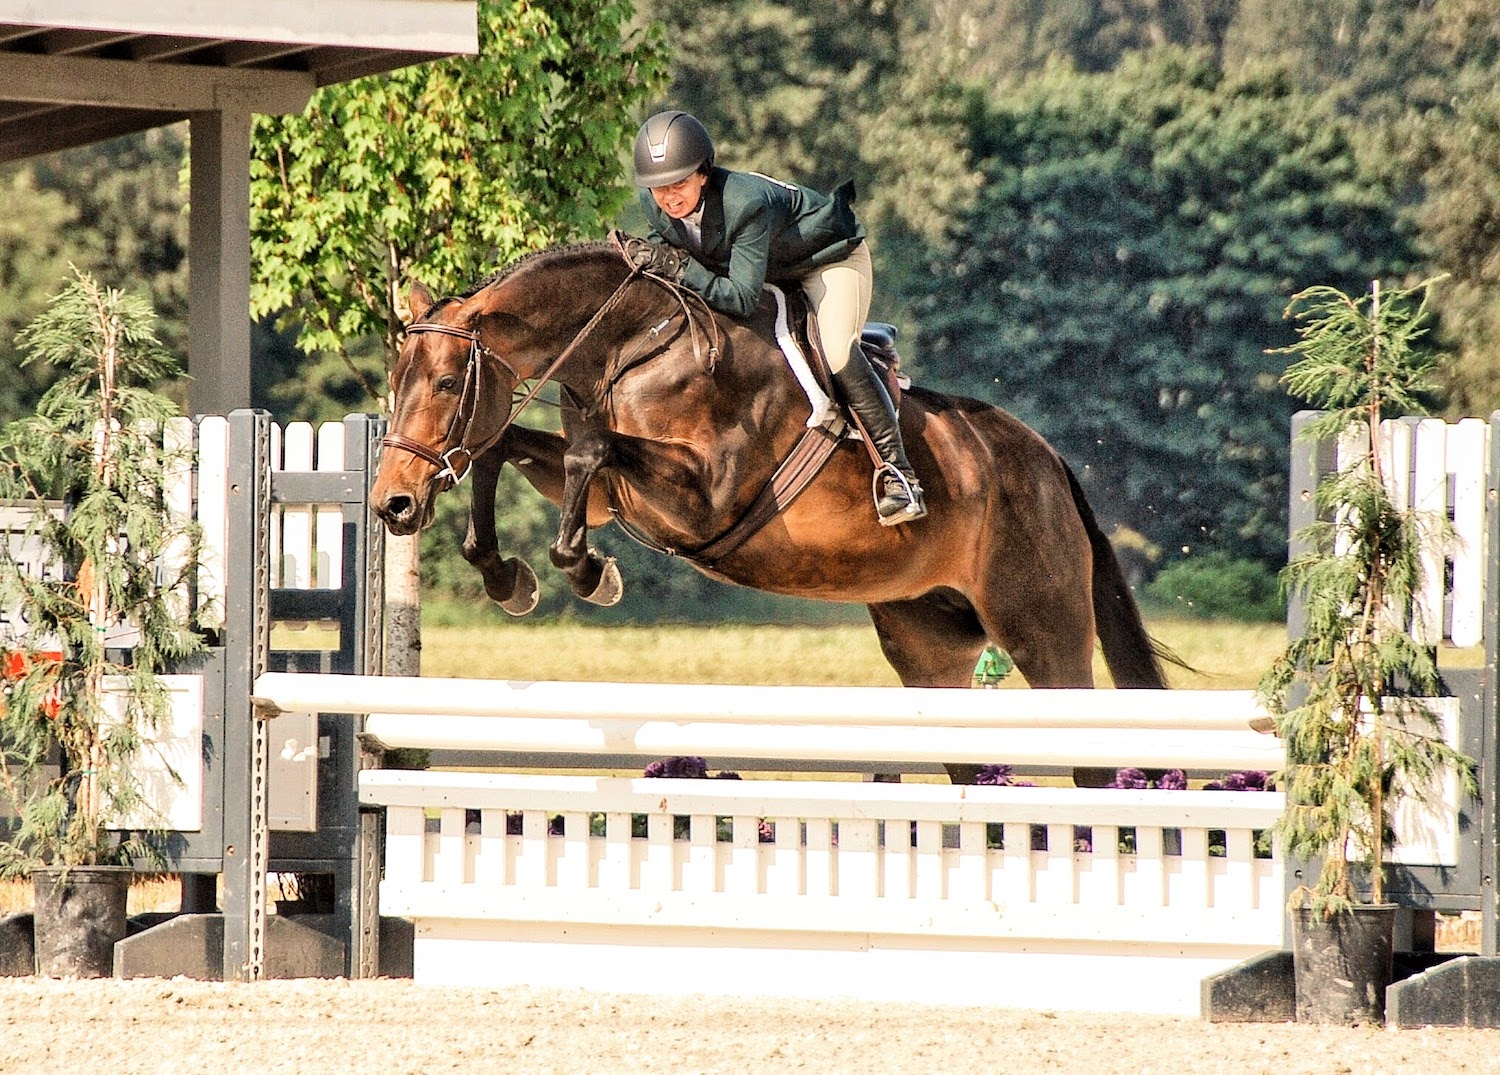 Magnolia Ridge rider jumps an oxer